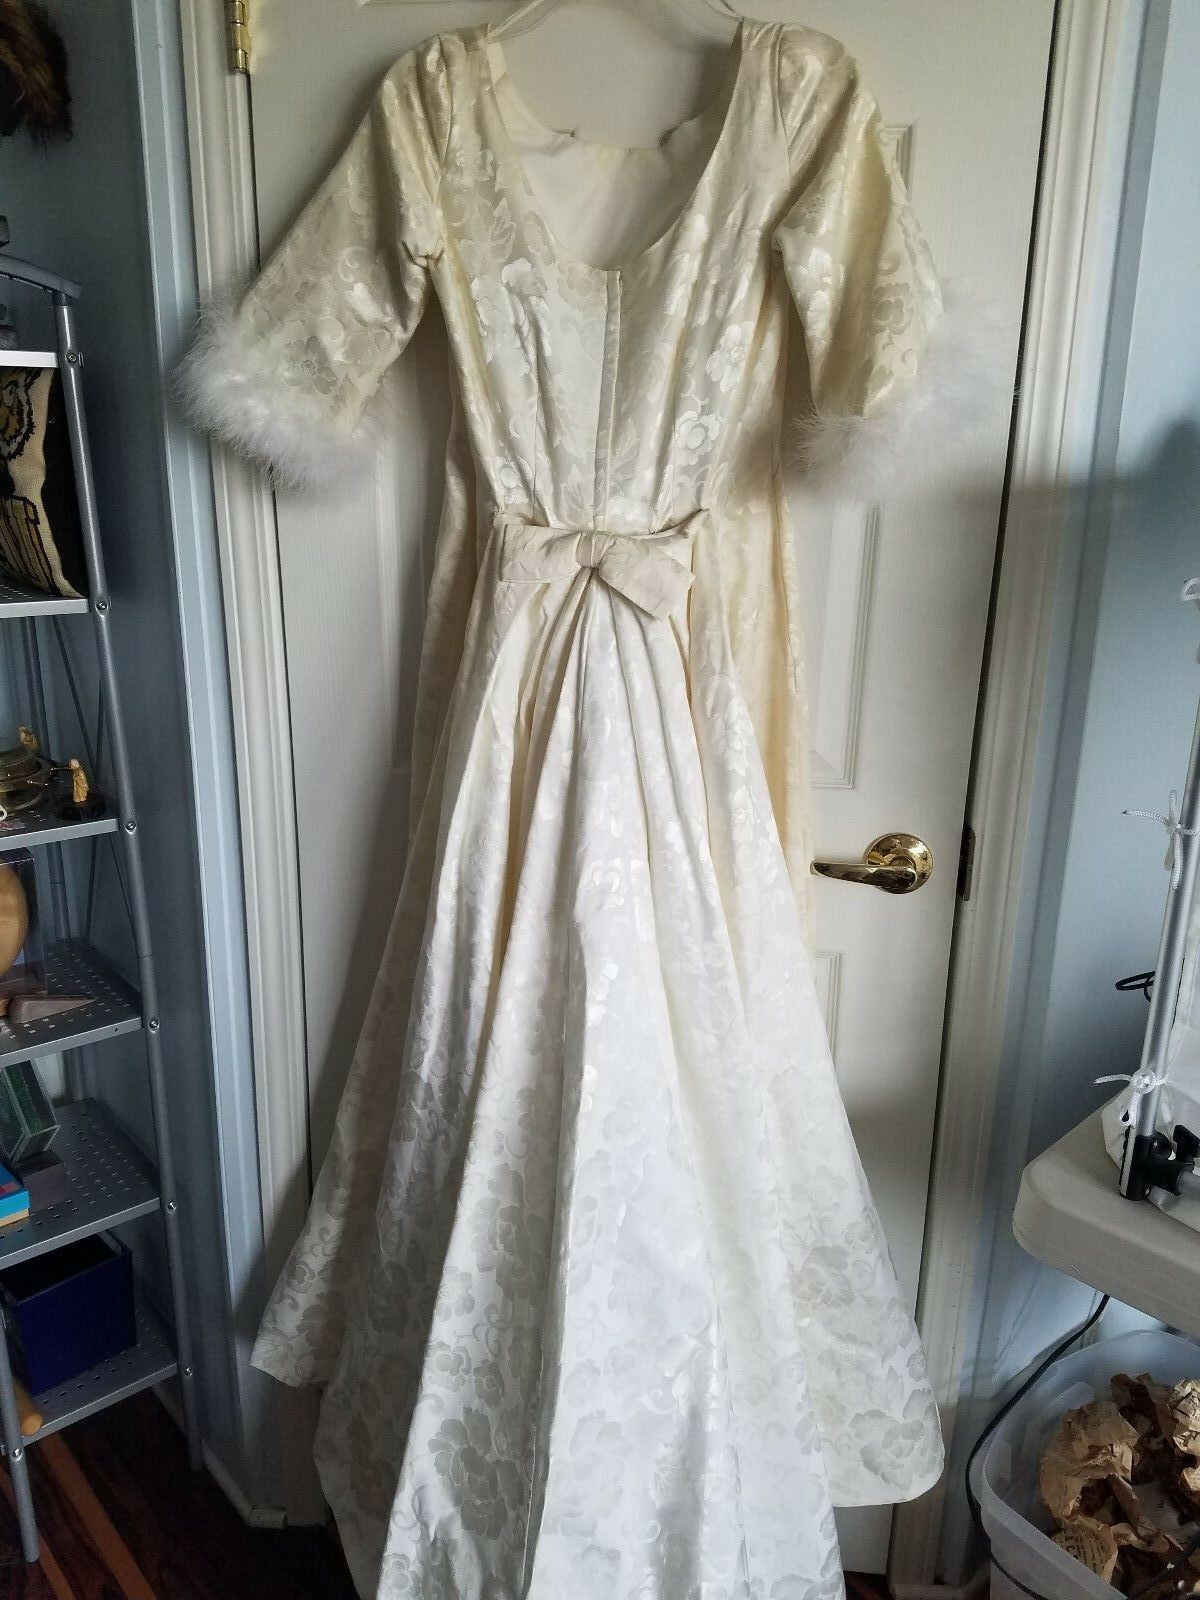 Vintage cream ivory color wedding dress with white feathers 1 2 sleeve floral